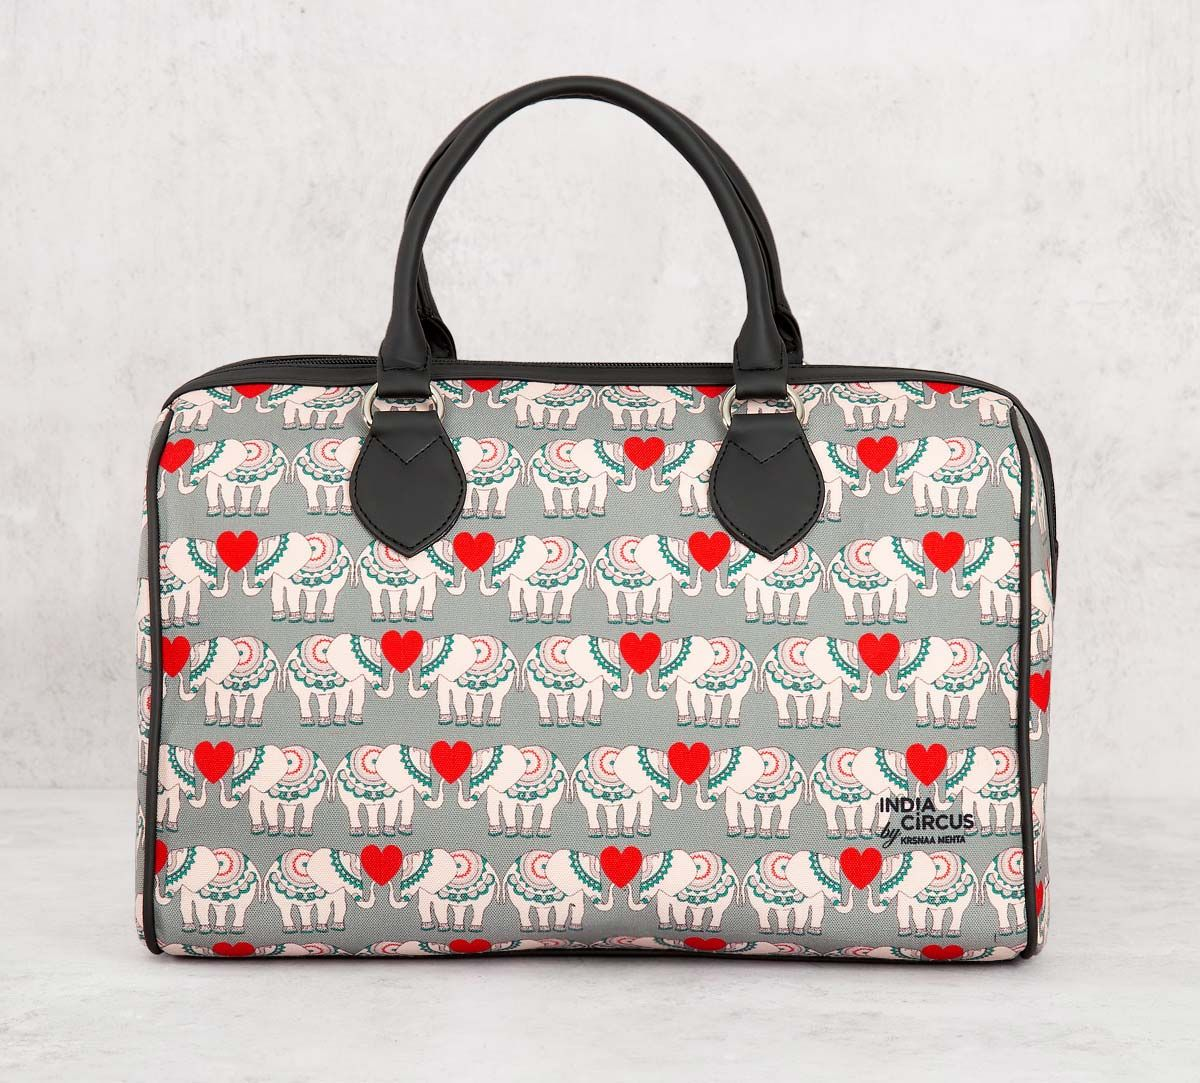 India Circus Heart Tusker Duffle Bag